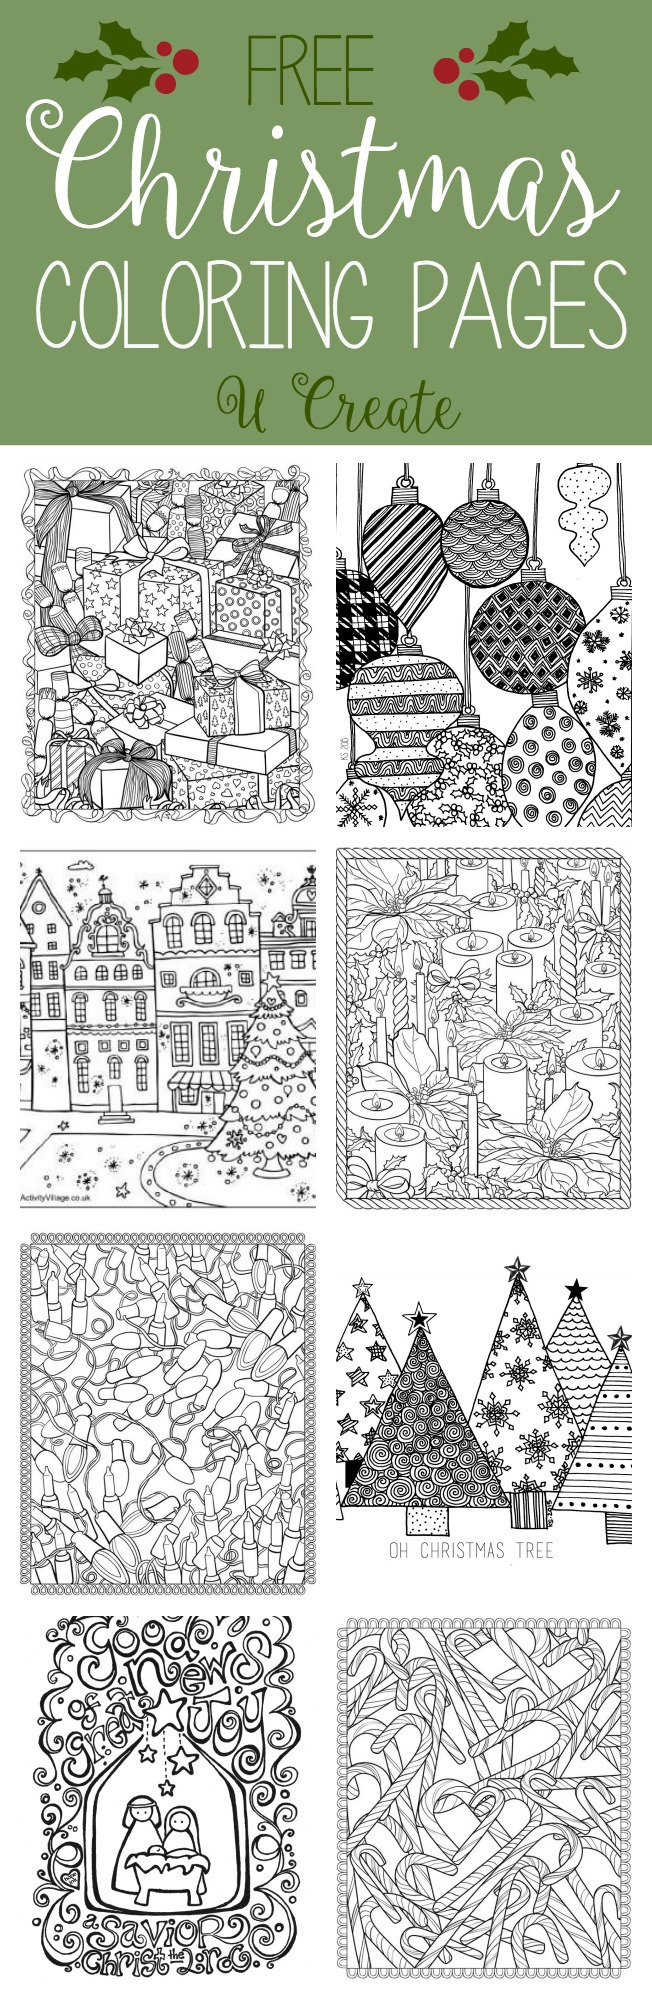 picture about Free Printable Holiday Coloring Pages named No cost Xmas Grownup Coloring Internet pages - U Develop